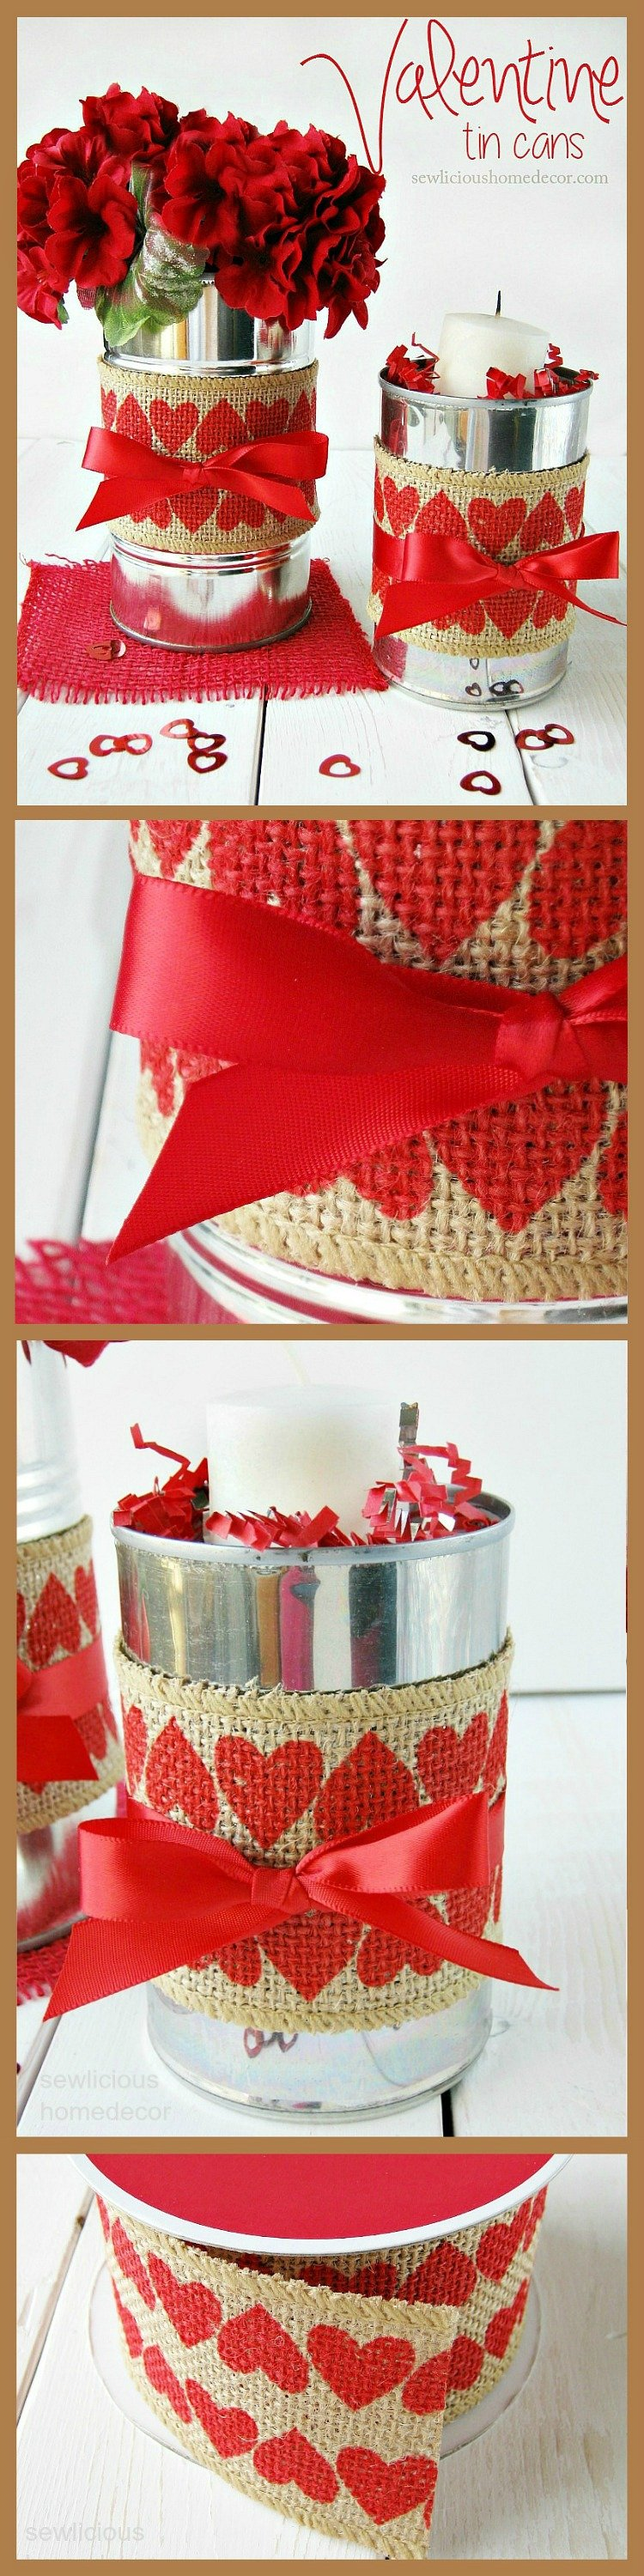 Valentine Tin Cans made with burlap Perfect gift ideas at sewlicioushomedecor.com